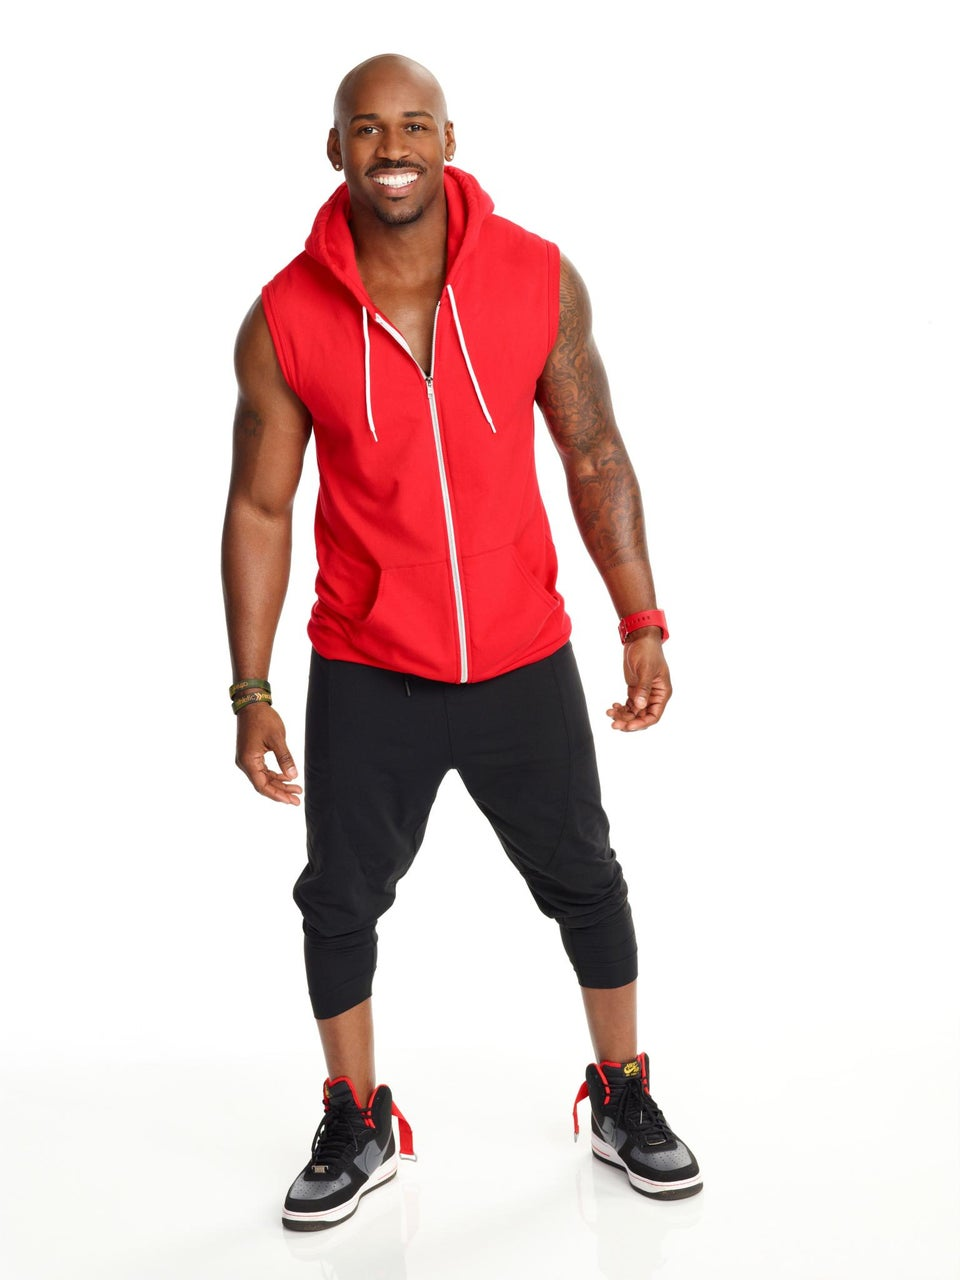 Celebrity Trainer Dolvett Quince's 7 Steps to a New You in the New Year